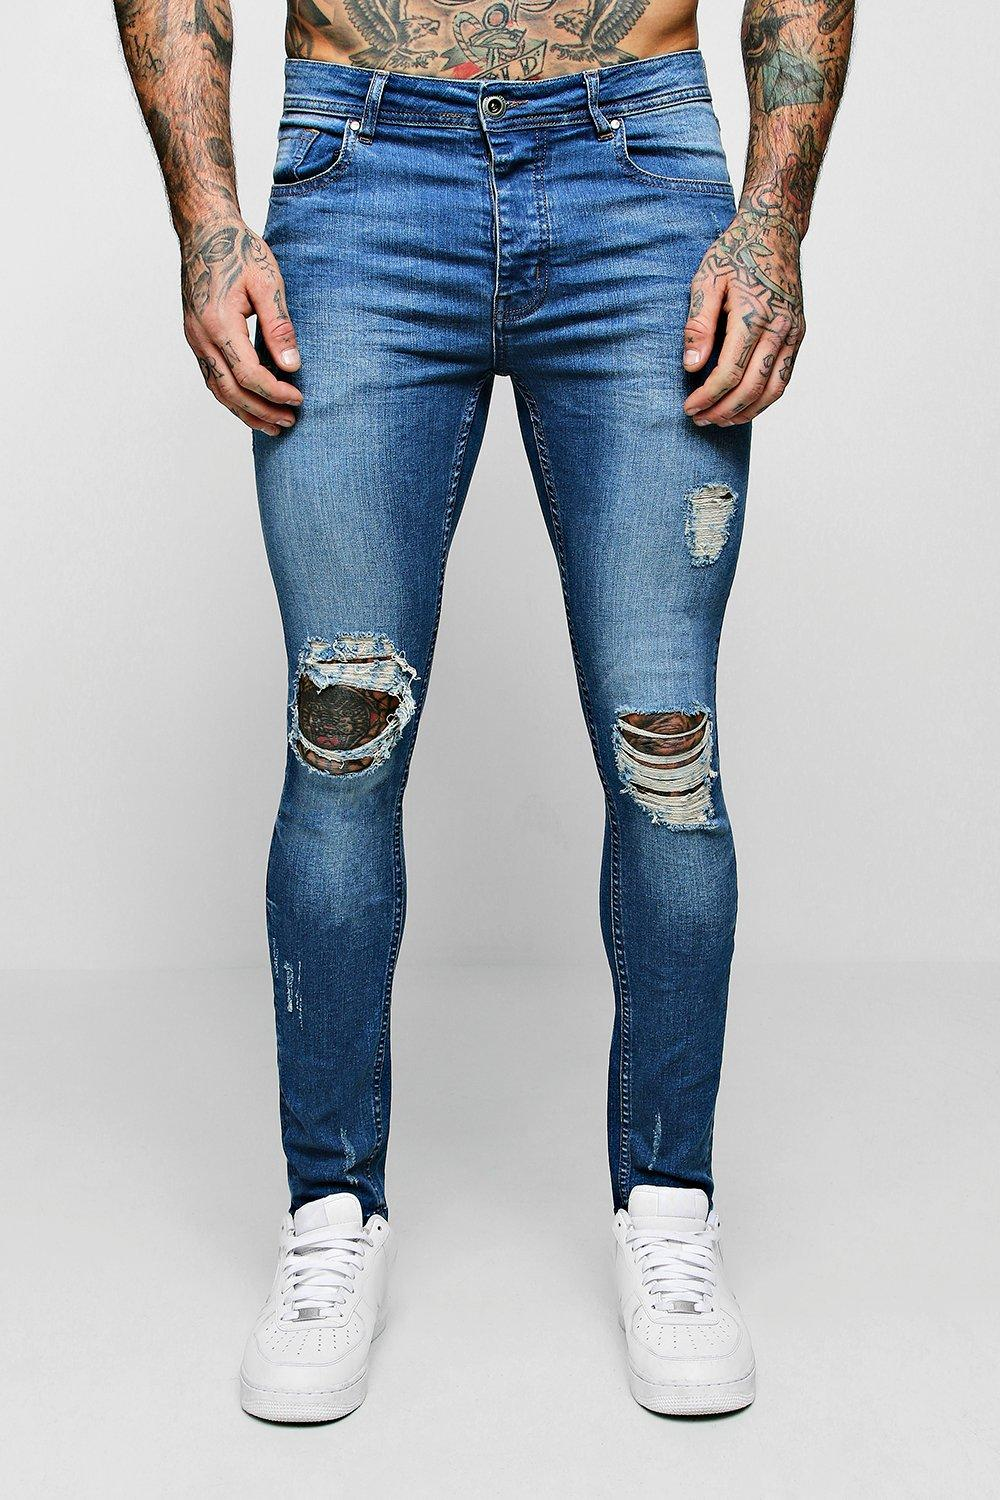 Super Skinny Fit Jeans With Distressing